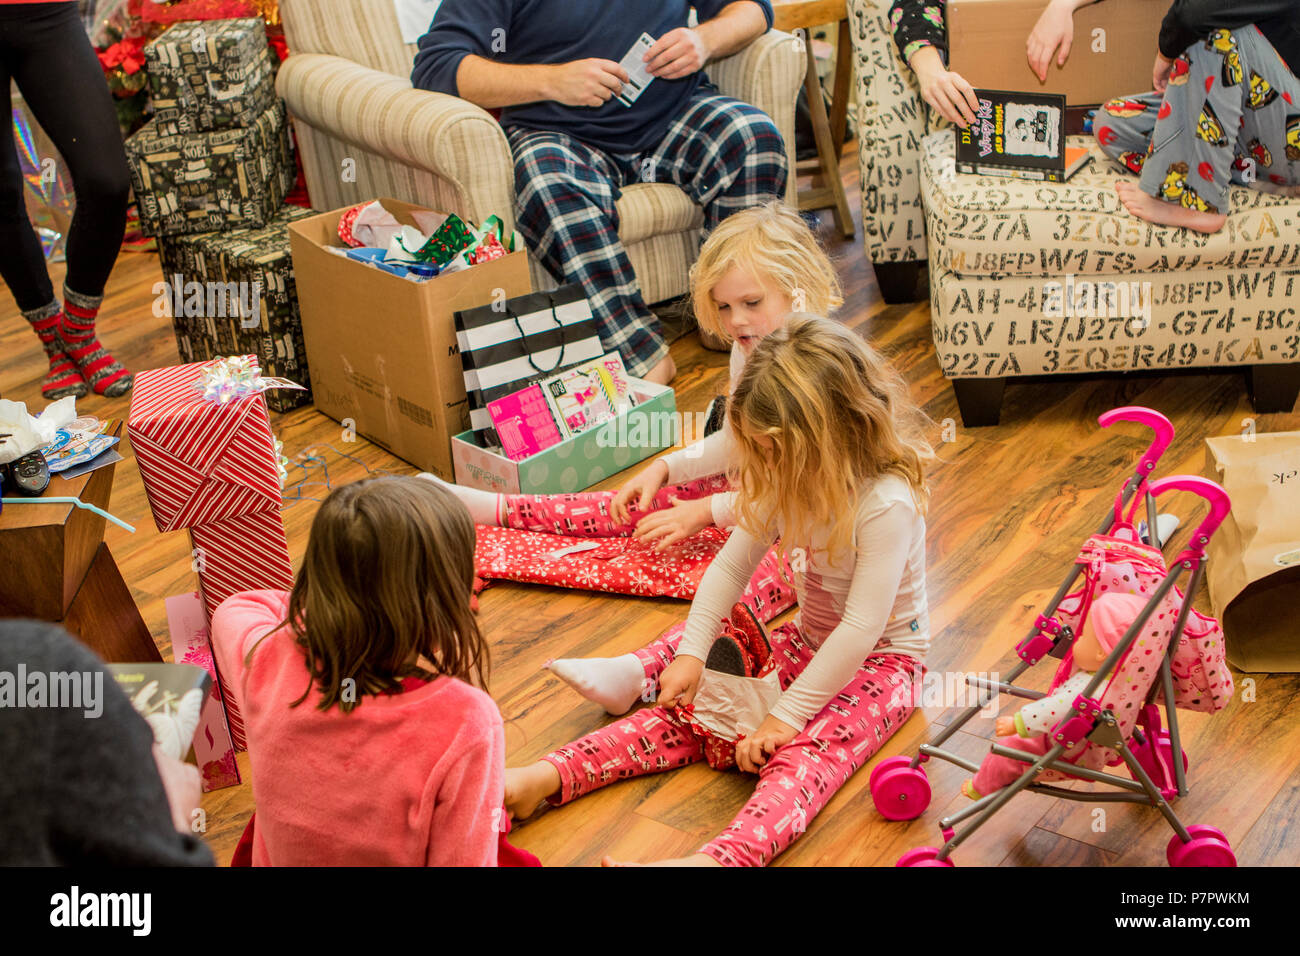 Three young girls, aged 3 to 8, sitting on floor as two open presents. Cranbrook, BC, Canada. Modlel released- front blonde #114 rear blonde #113 dark - Stock Image